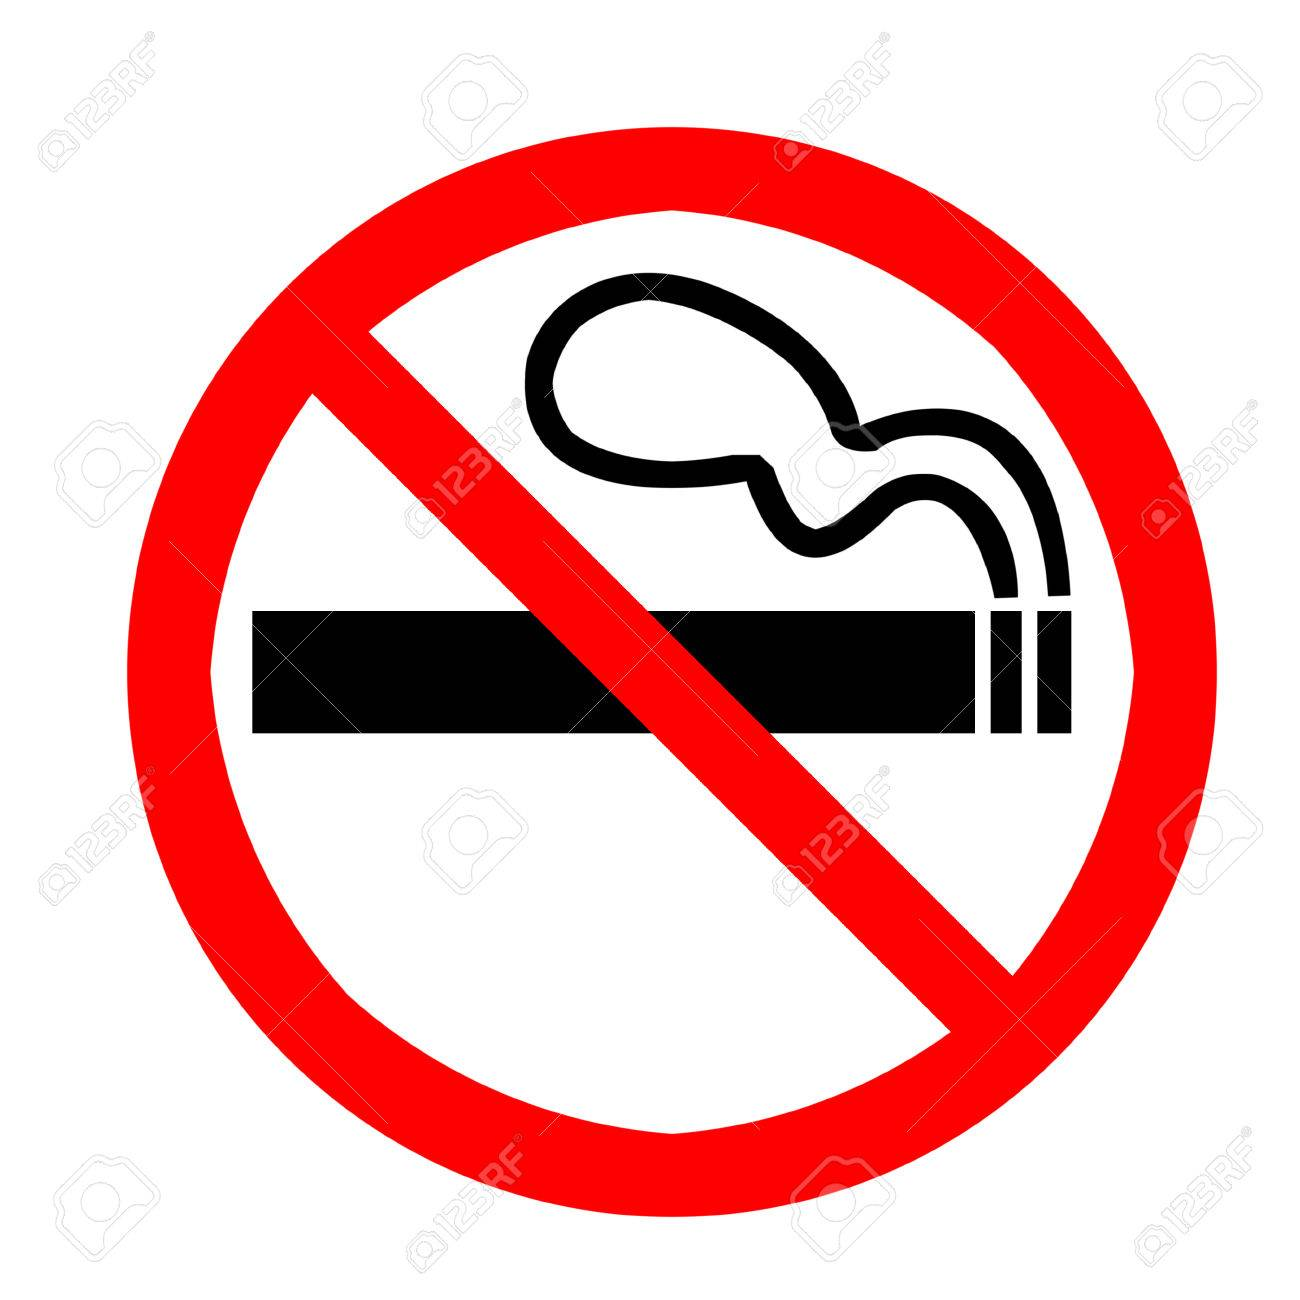 No smoking symbol stock photo picture and royalty free image no smoking symbol stock photo 41169709 buycottarizona Images